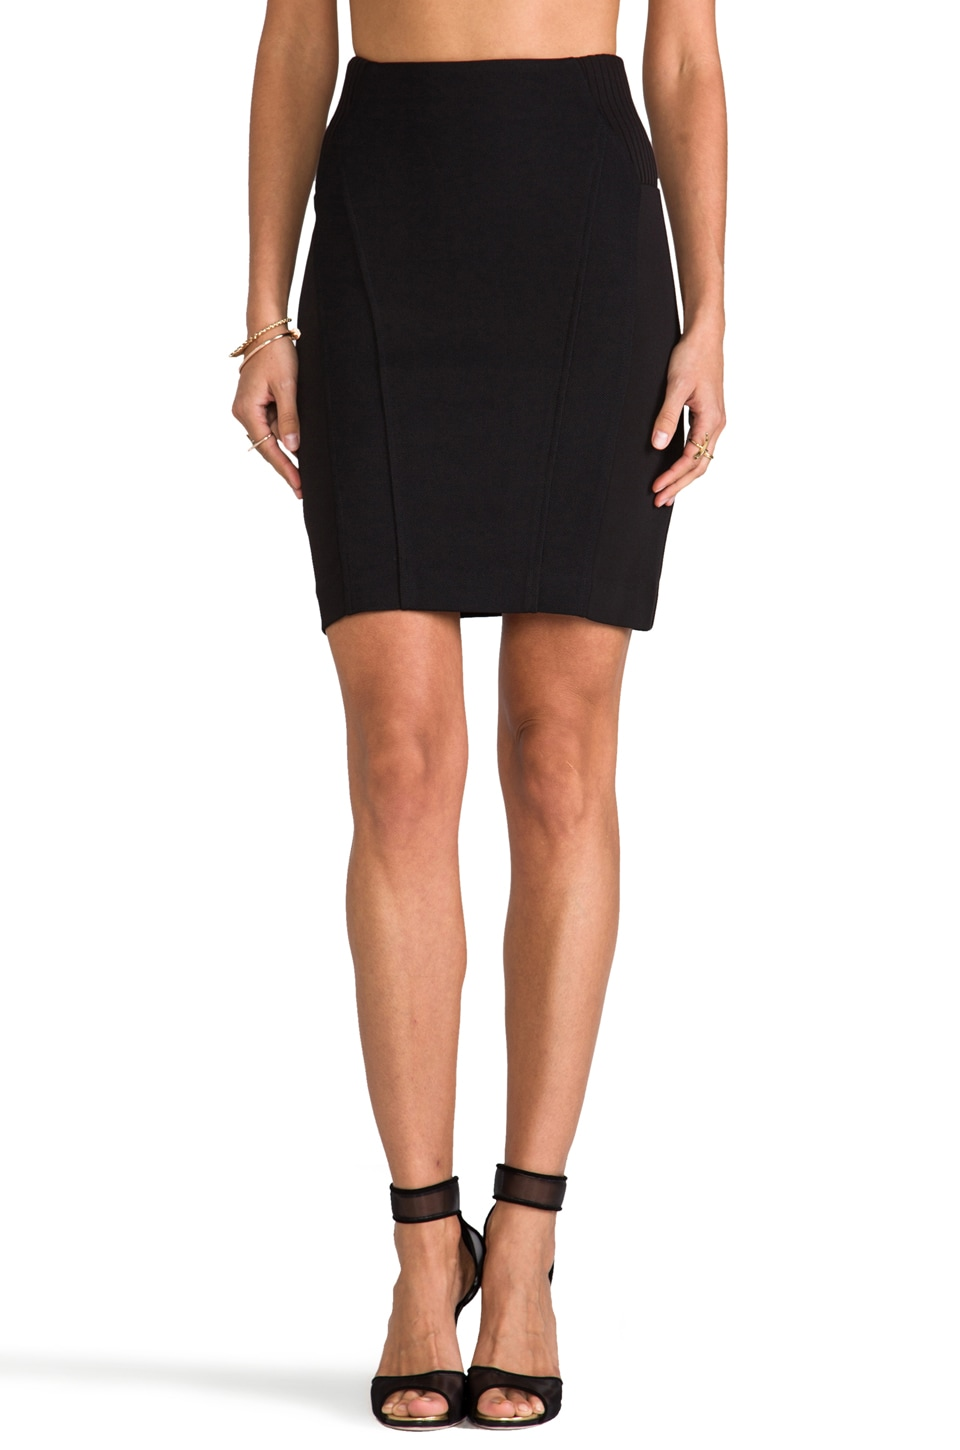 Greylin Victoria Pencil Skirt in Black